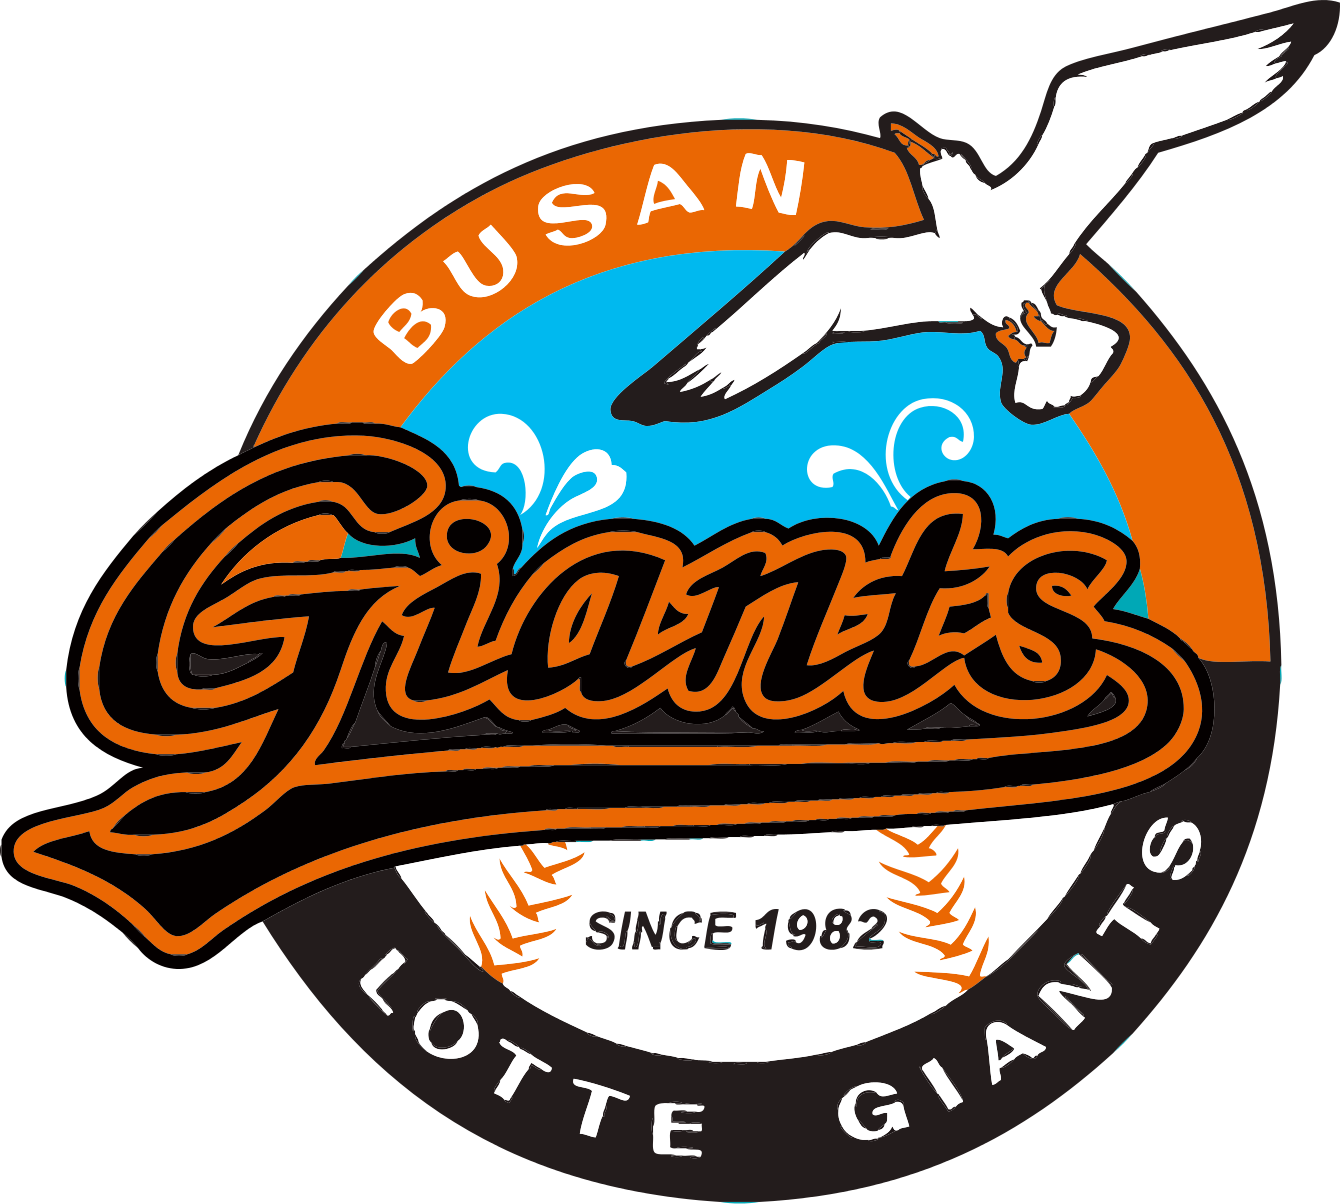 File:Lotte Giants.svg